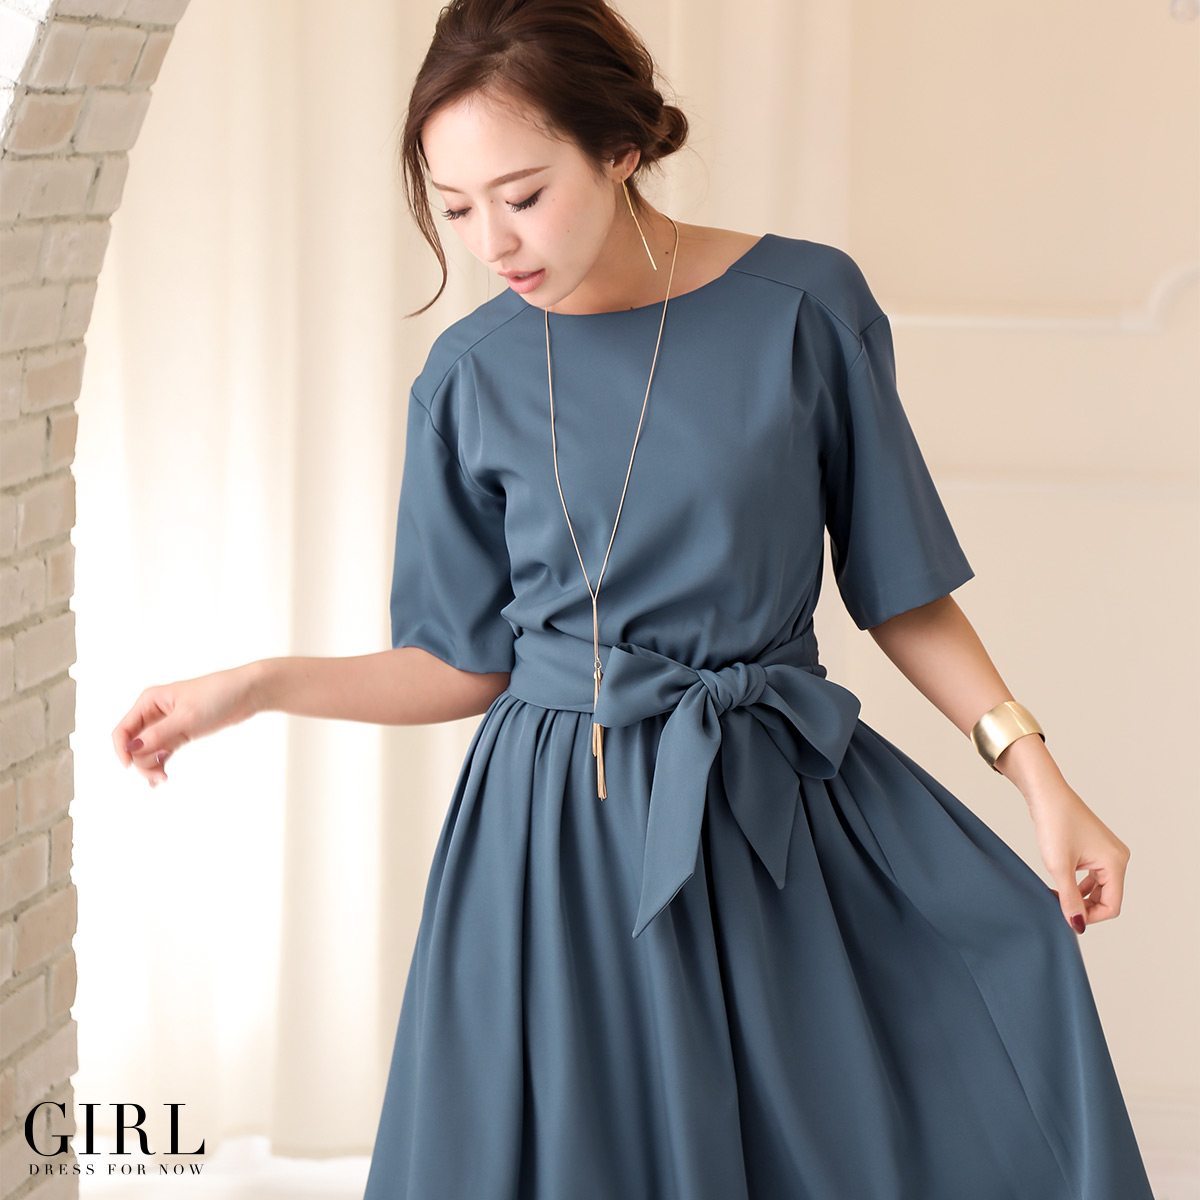 Dress Shop GIRL: It Is Fall And Winter In The Long Dress